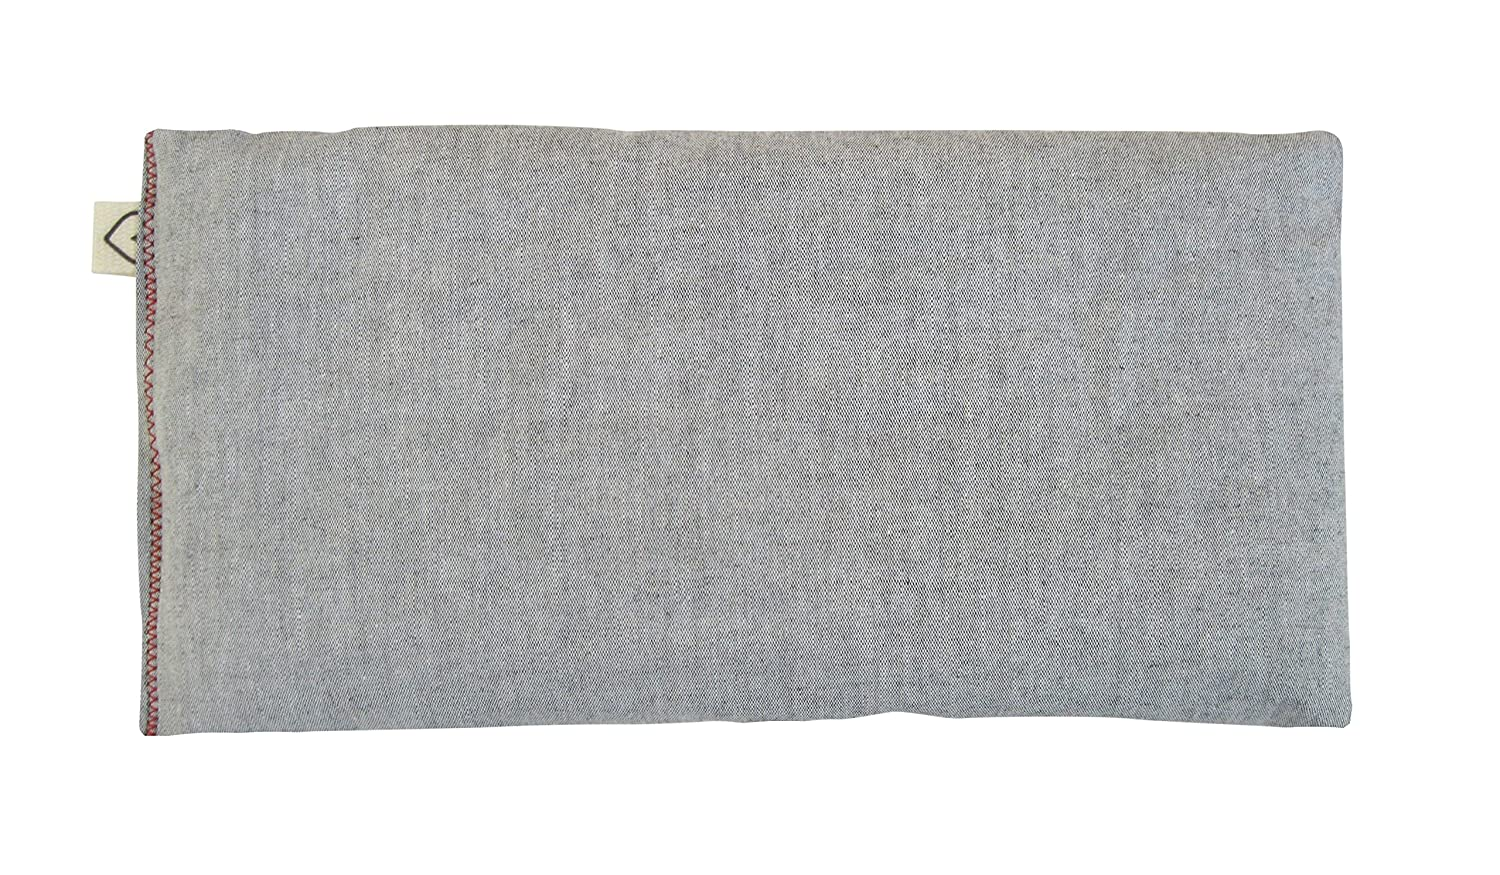 Yoga//Therapy Microwavable Hot//Cold TEPV-MP Unscented Colorful Crushed Velvet Majestic Purple Flax Seed Filled Eye Pillow Handmade by Candi Andi